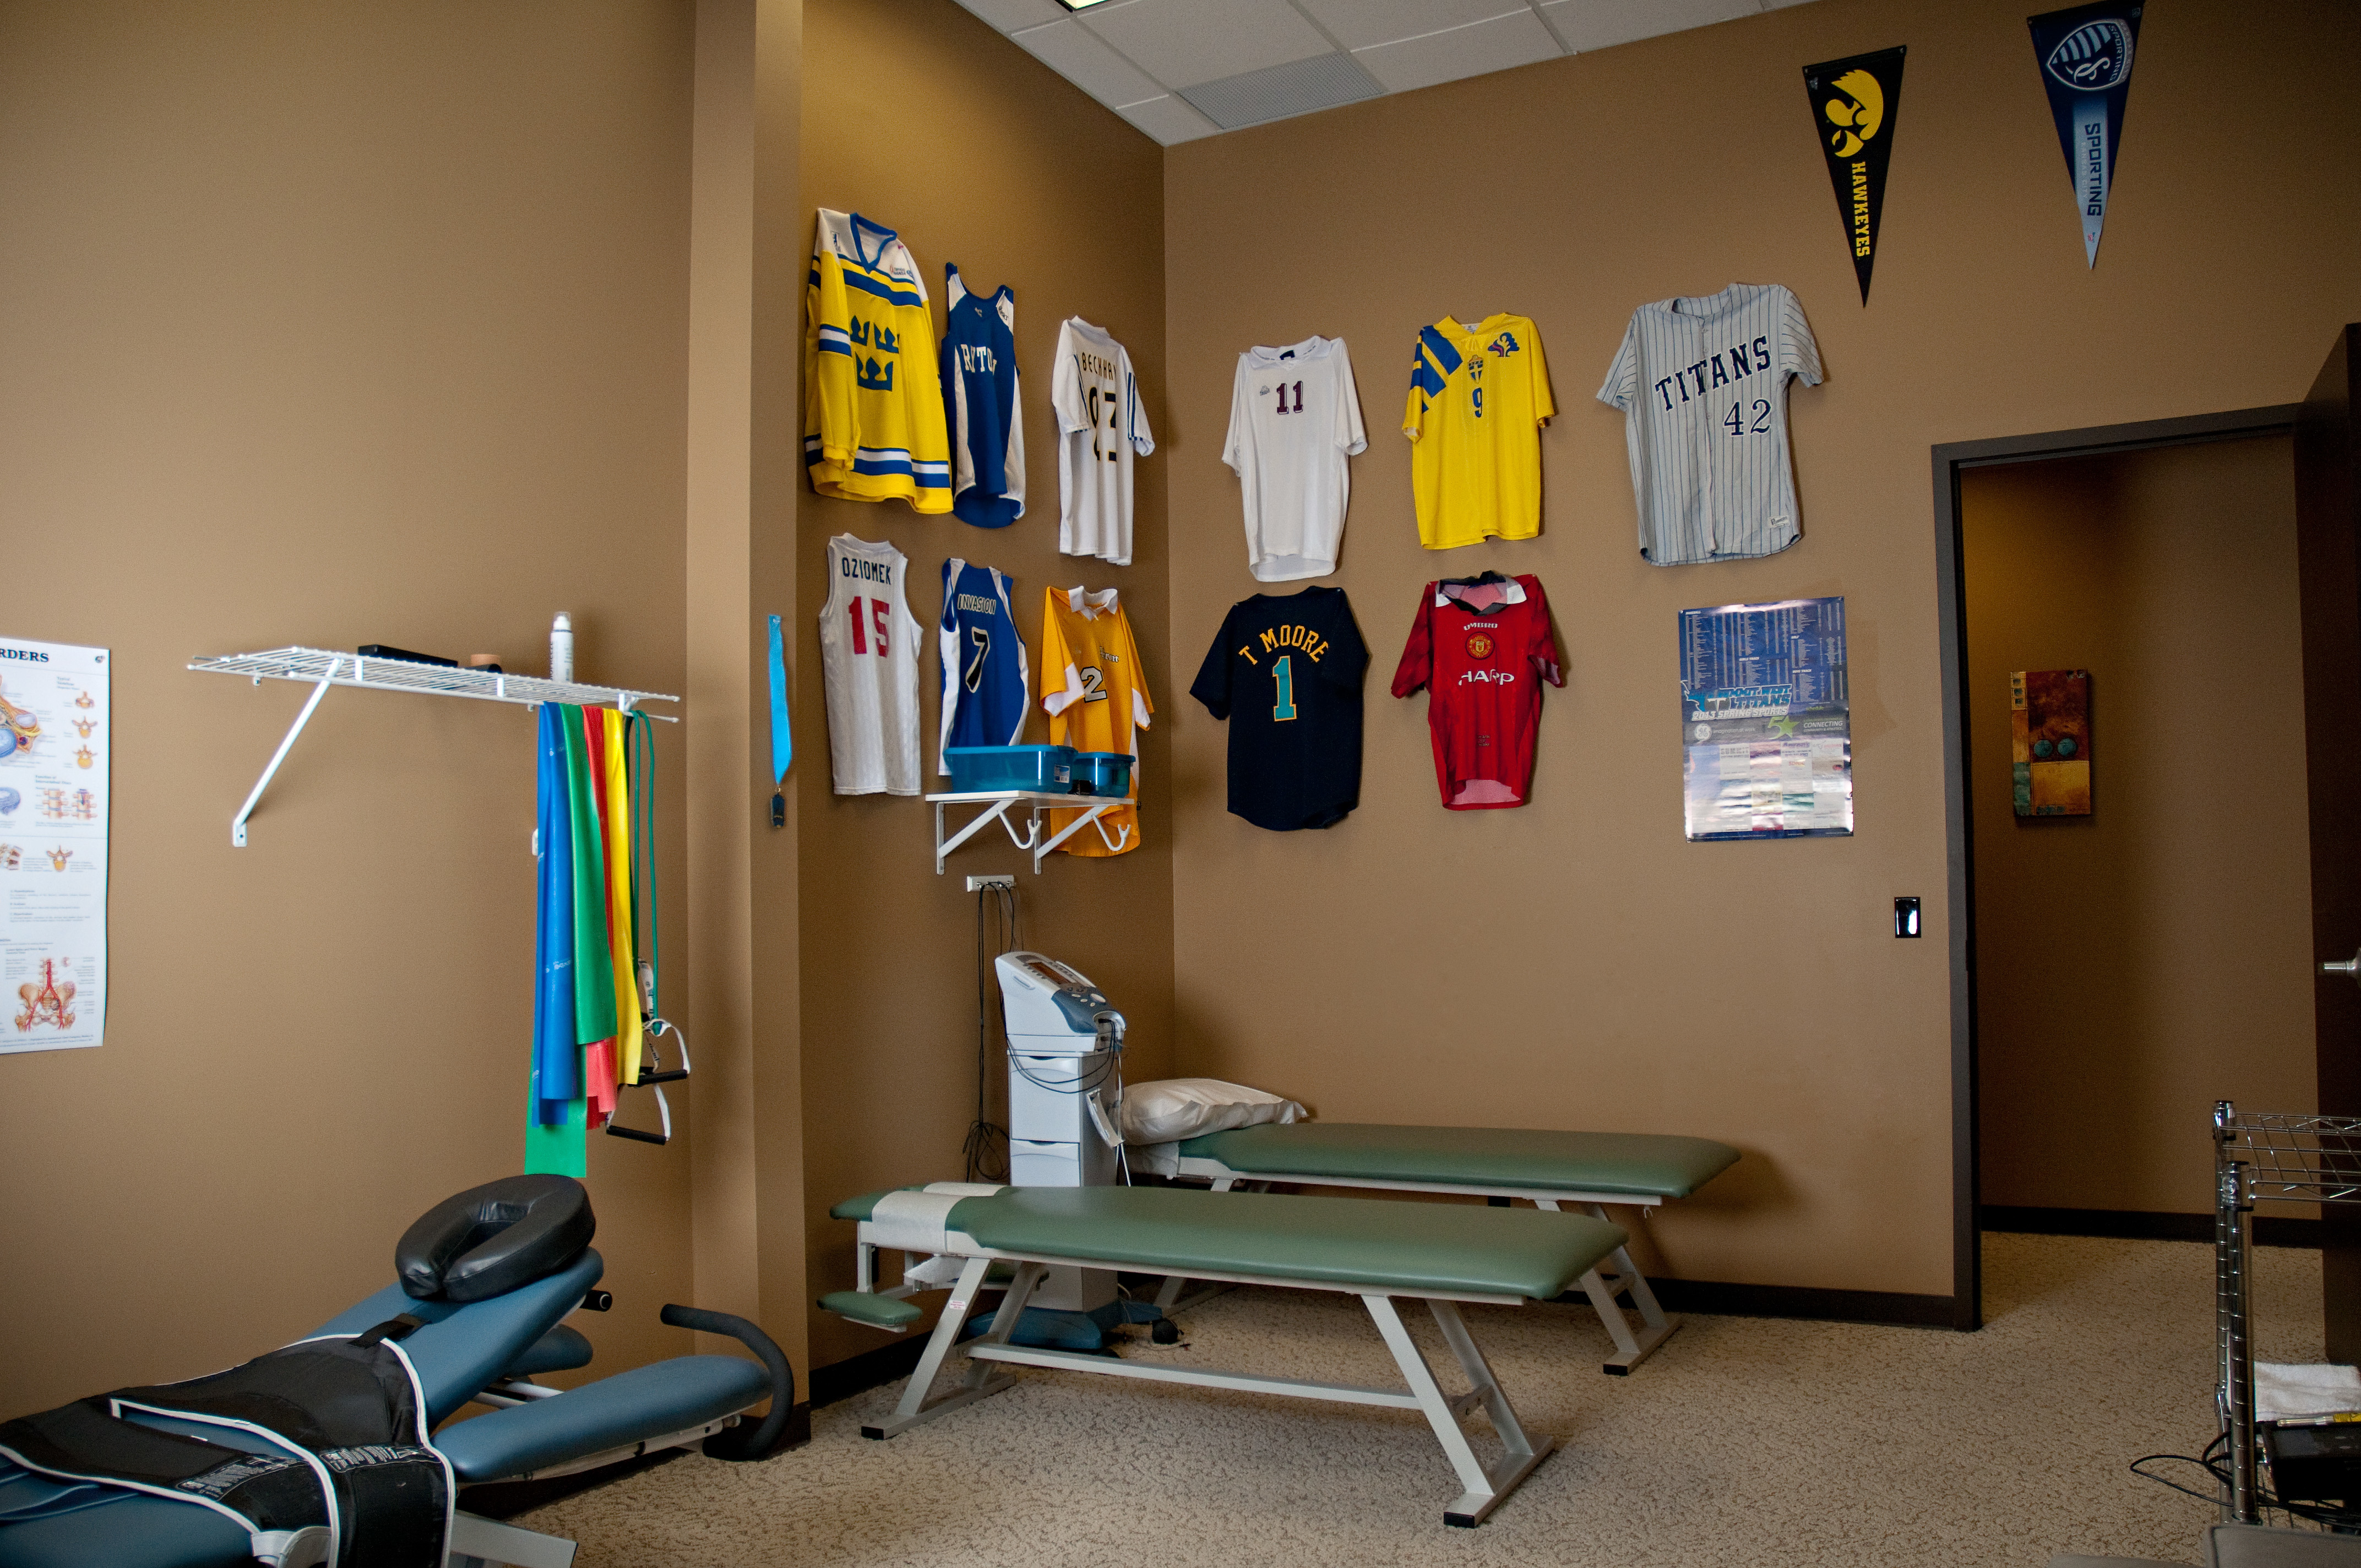 Raintree Medical and Chiropractic Center image 4